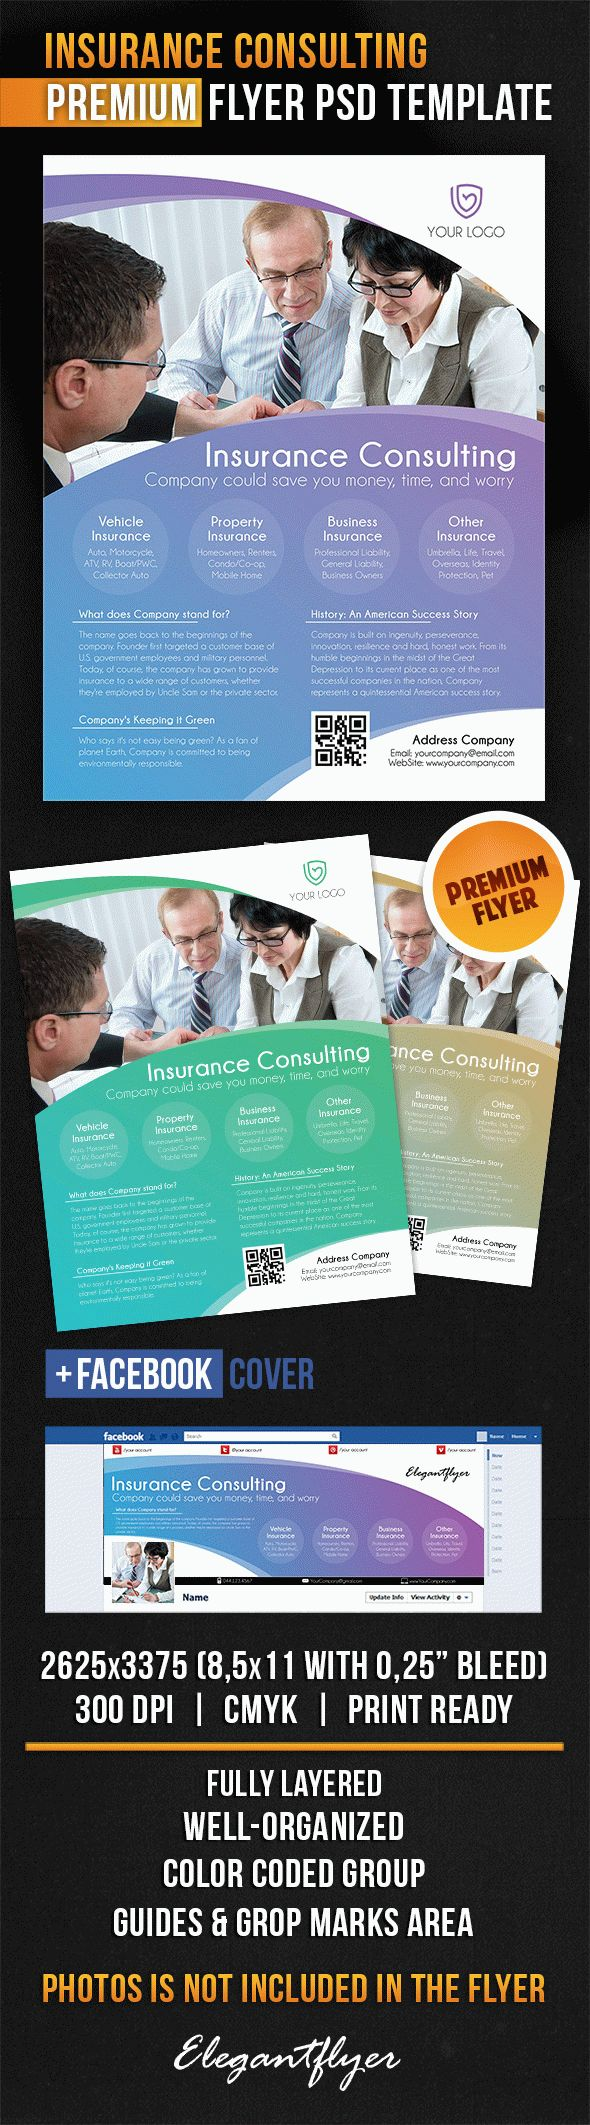 Bigpreview_insurance-consulting-flyer-psd-template-facebook-cover